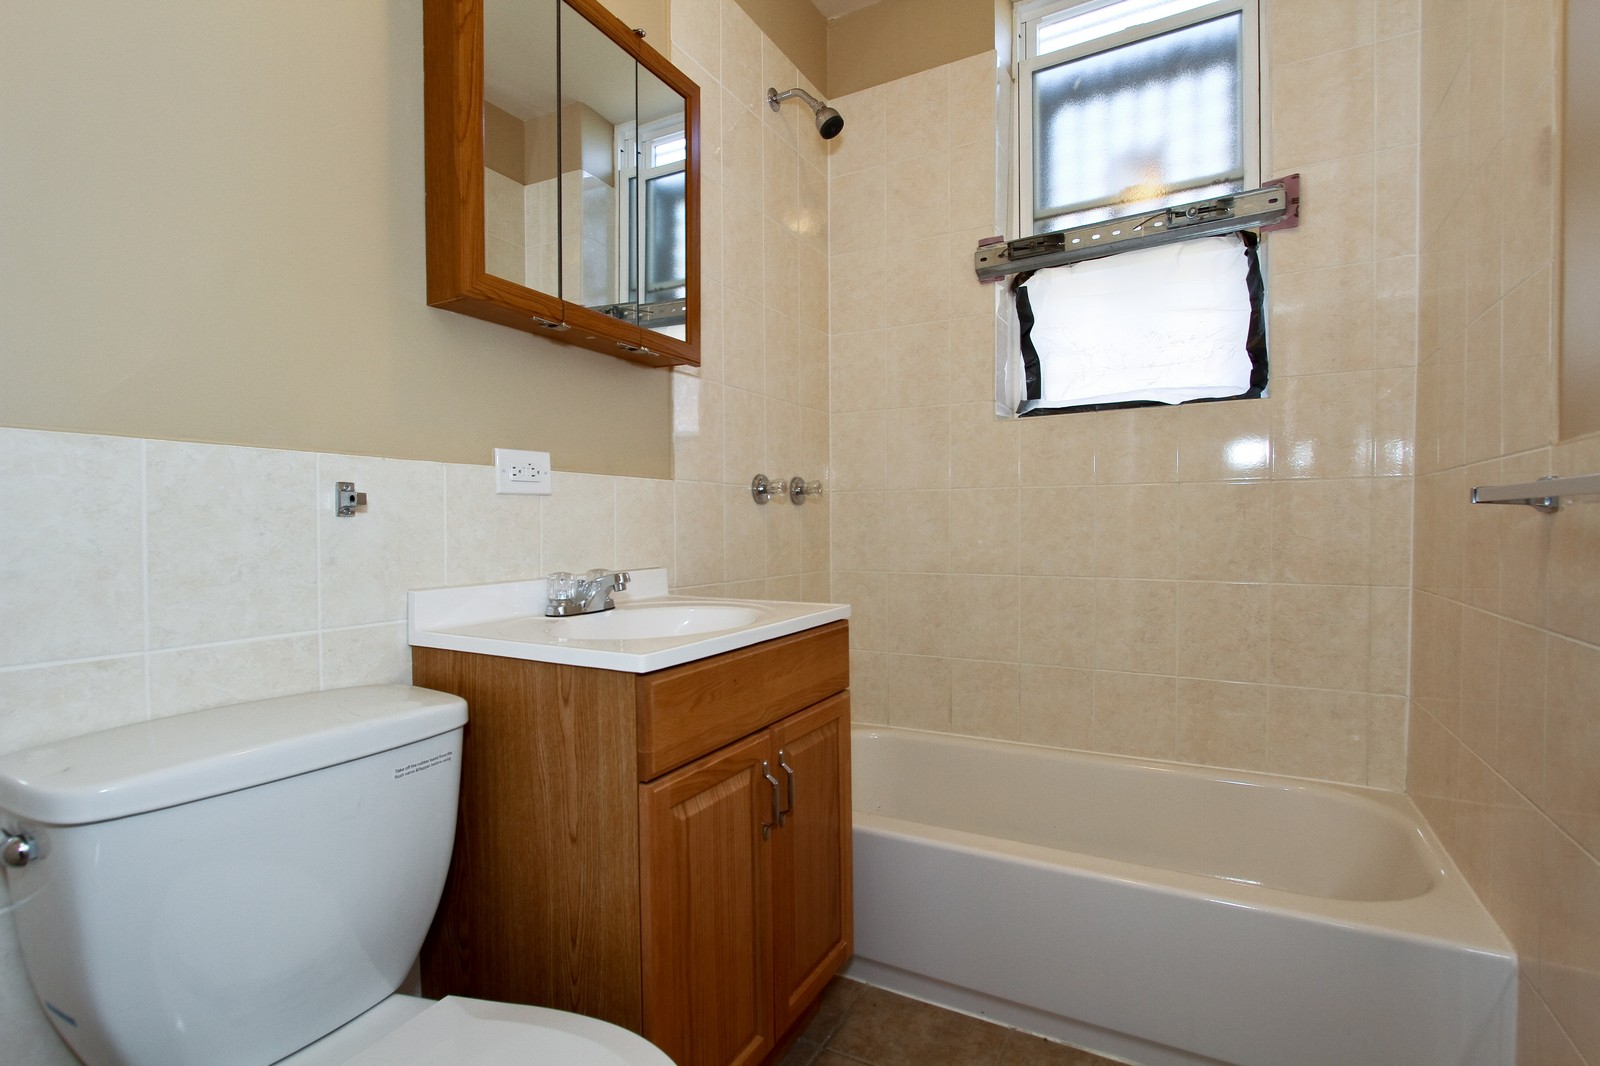 Real Estate Photography - 449 W 61st St, Chicago, IL, 60621 - 2nd Bathroom